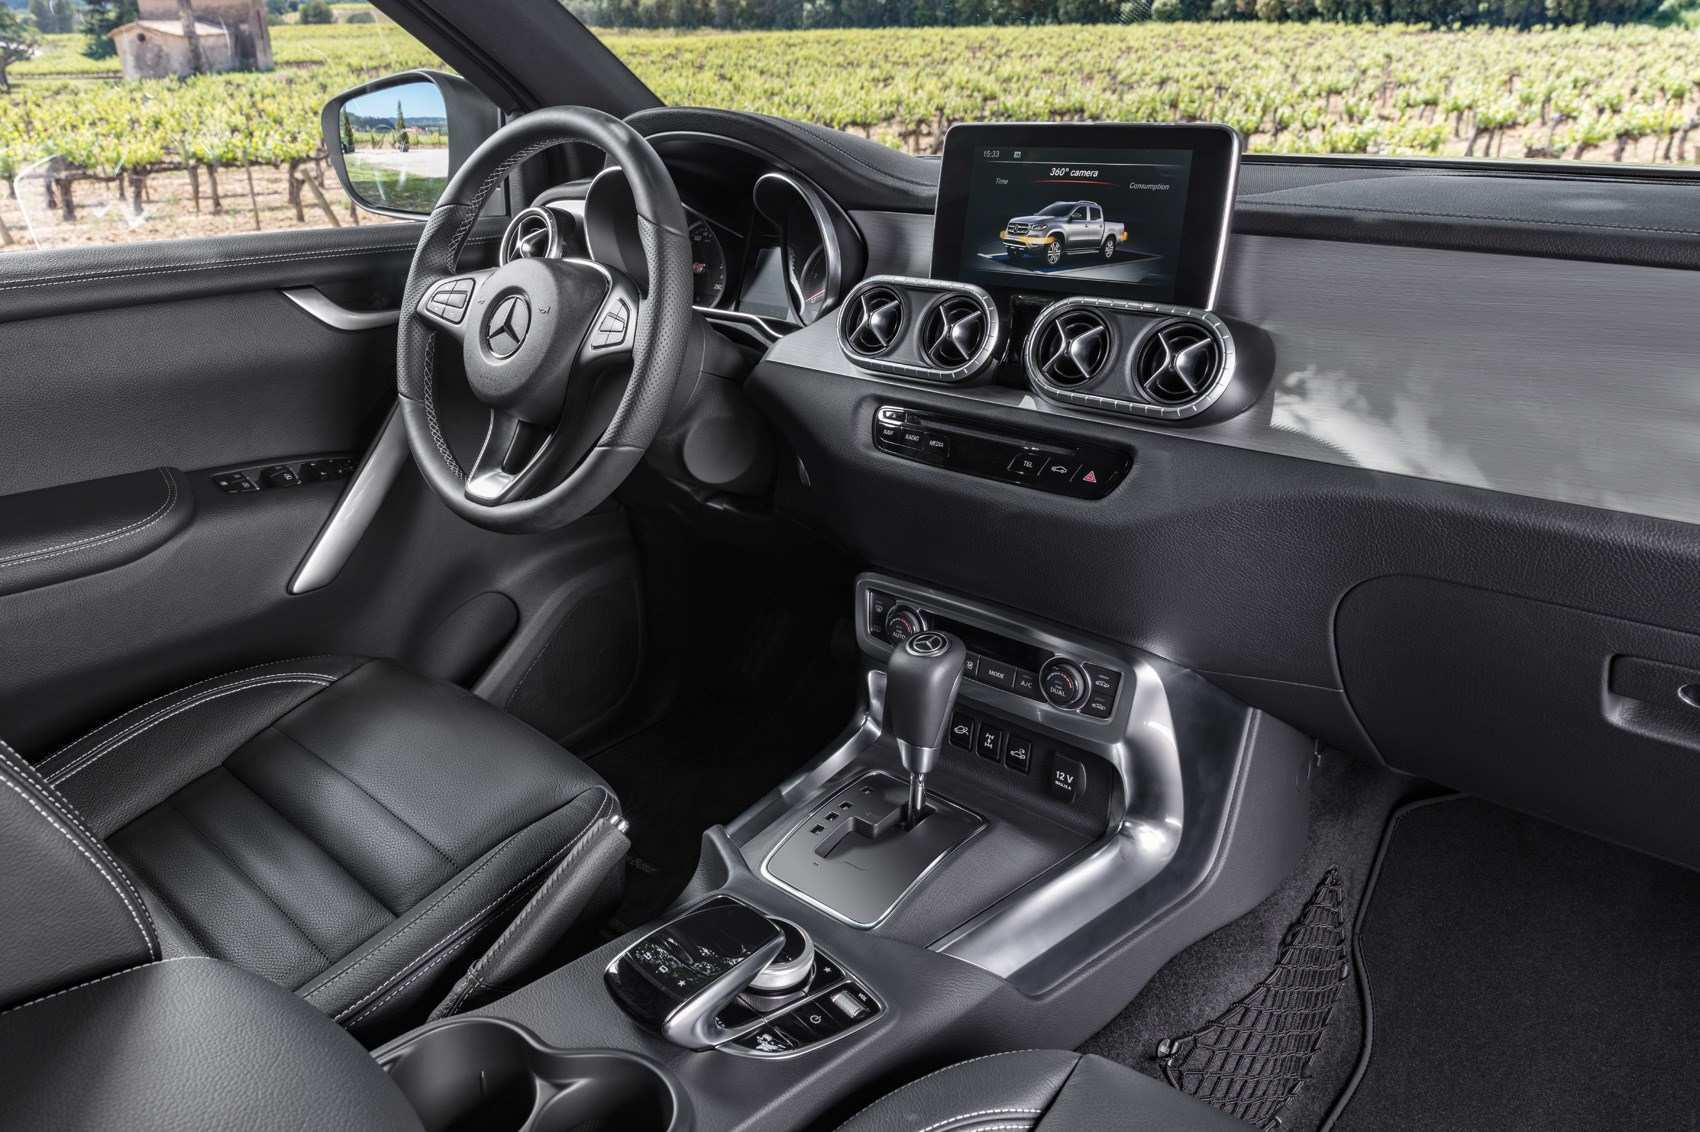 37 New New 2019 Mercedes Ute Review And Specs Rumors with New 2019 Mercedes Ute Review And Specs